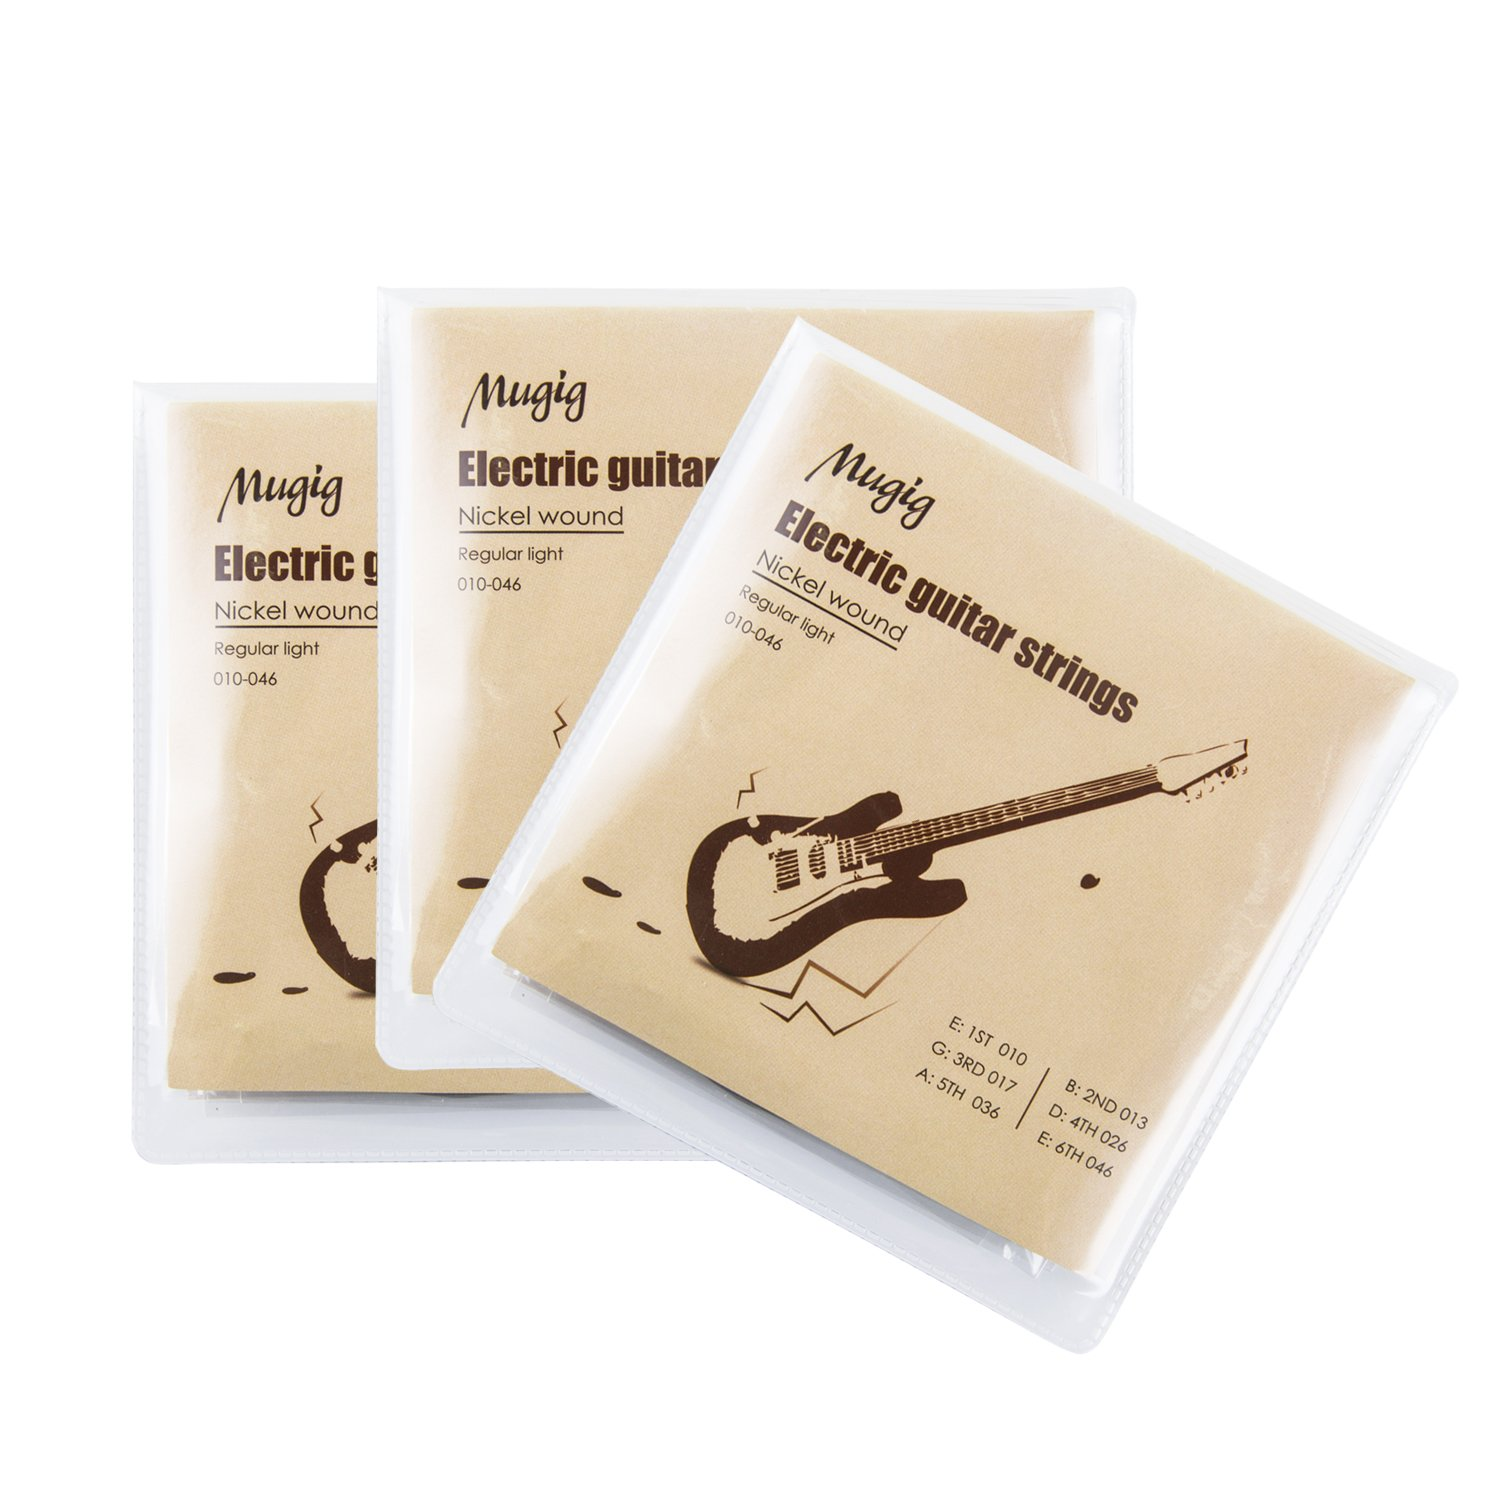 Mugig Electric Guitar Strings, Guitar Accessories- Phosphor Bronze, Super light